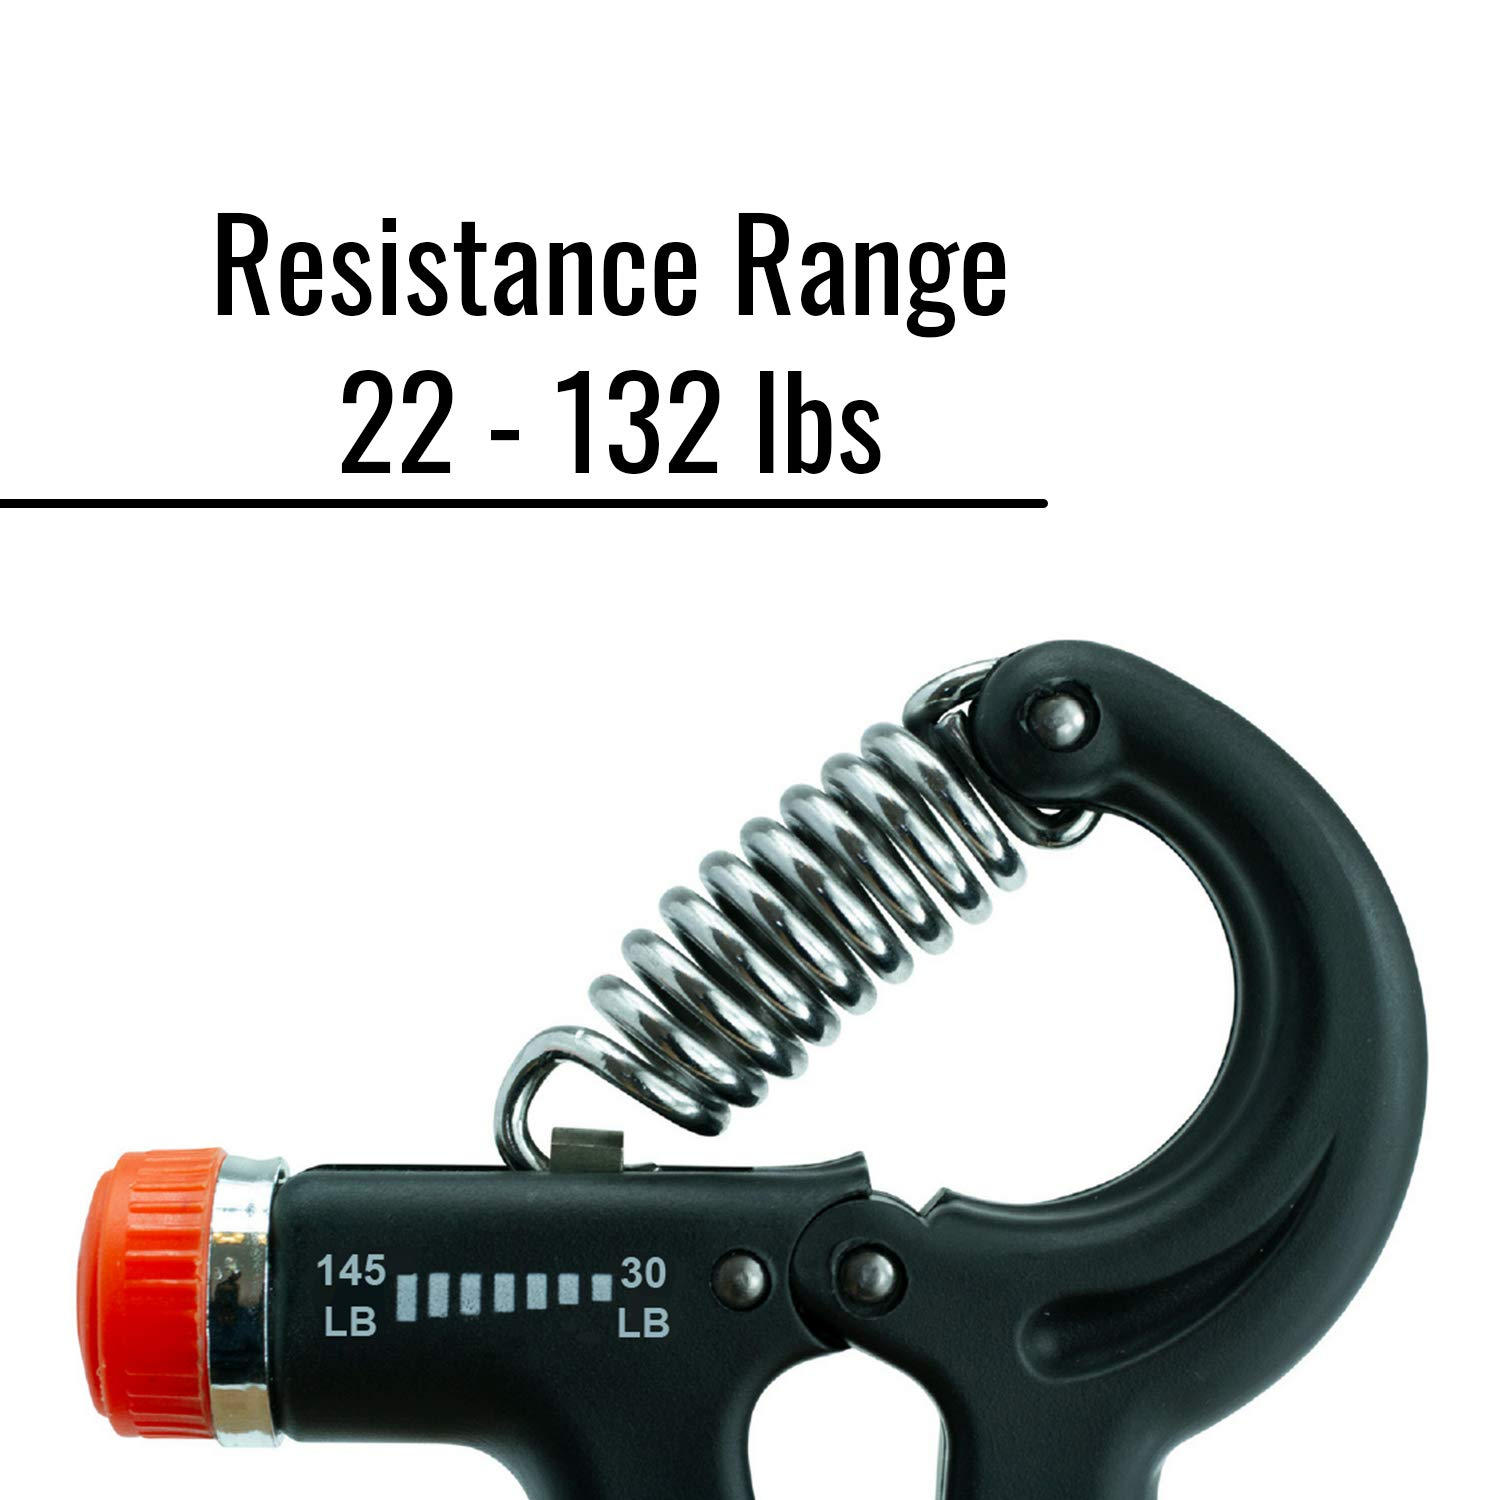 Forearm Workout Wrist Strength Trainer Rock Climbing Squeezer 2 Pack Gripper Exerciser Fingers Non Slip Rubber Crusher Houseables Hand Grip Strengthener w//Adjustable Resistance 22-132 lbs